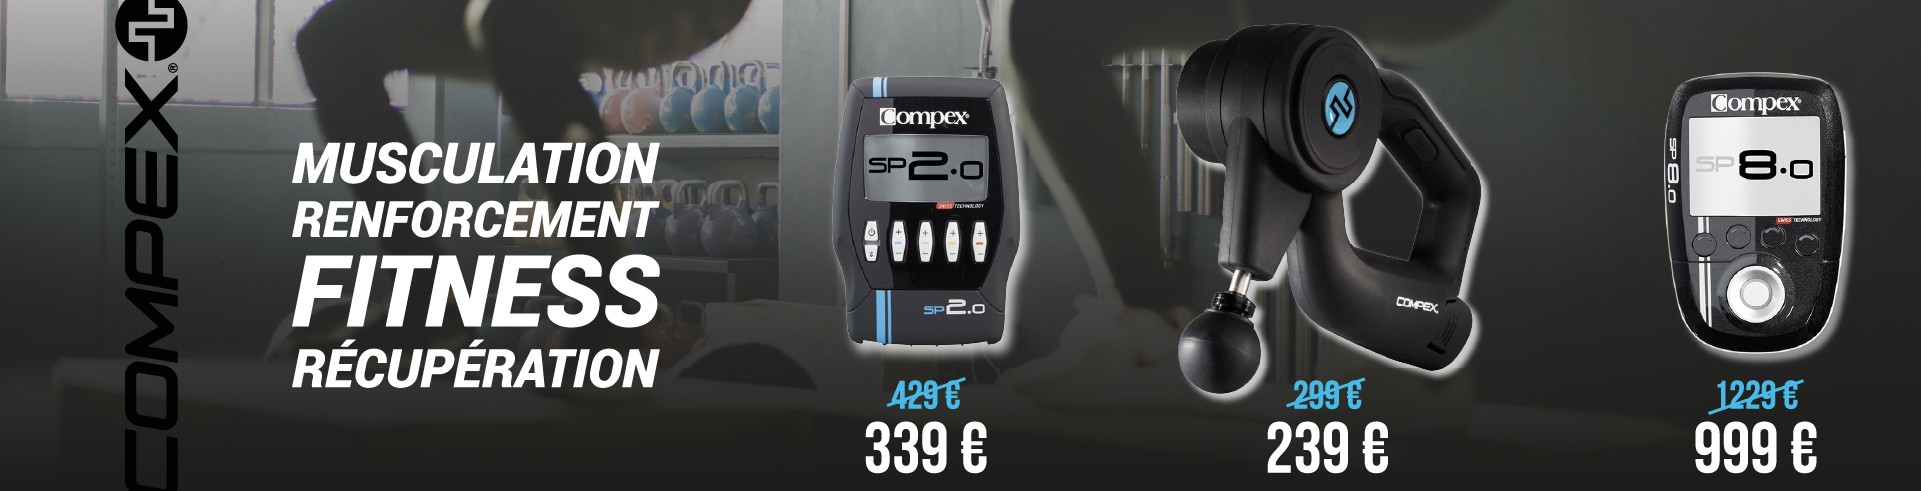 Compex promotions